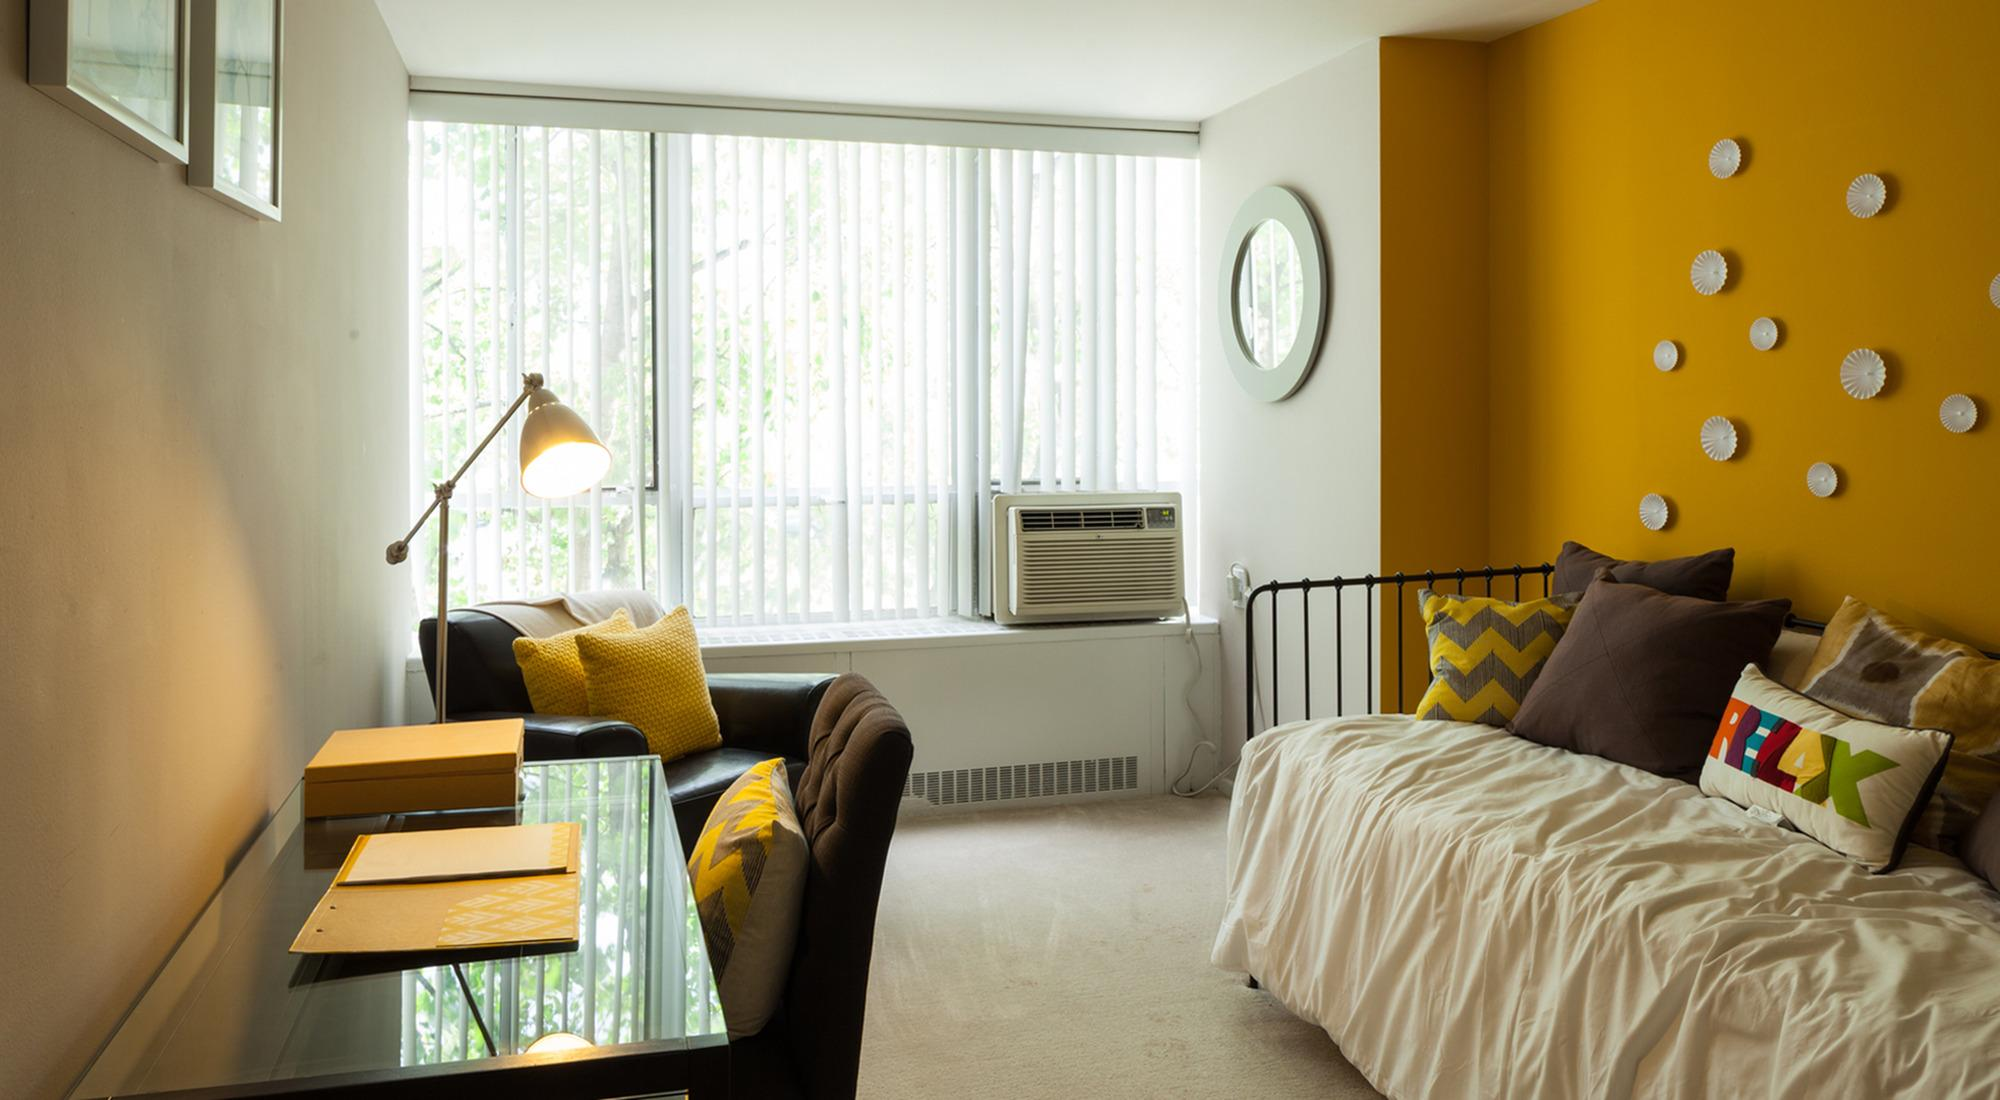 Lake meadows apartments chicago il walk score for 3 bedroom apartments in lake county il